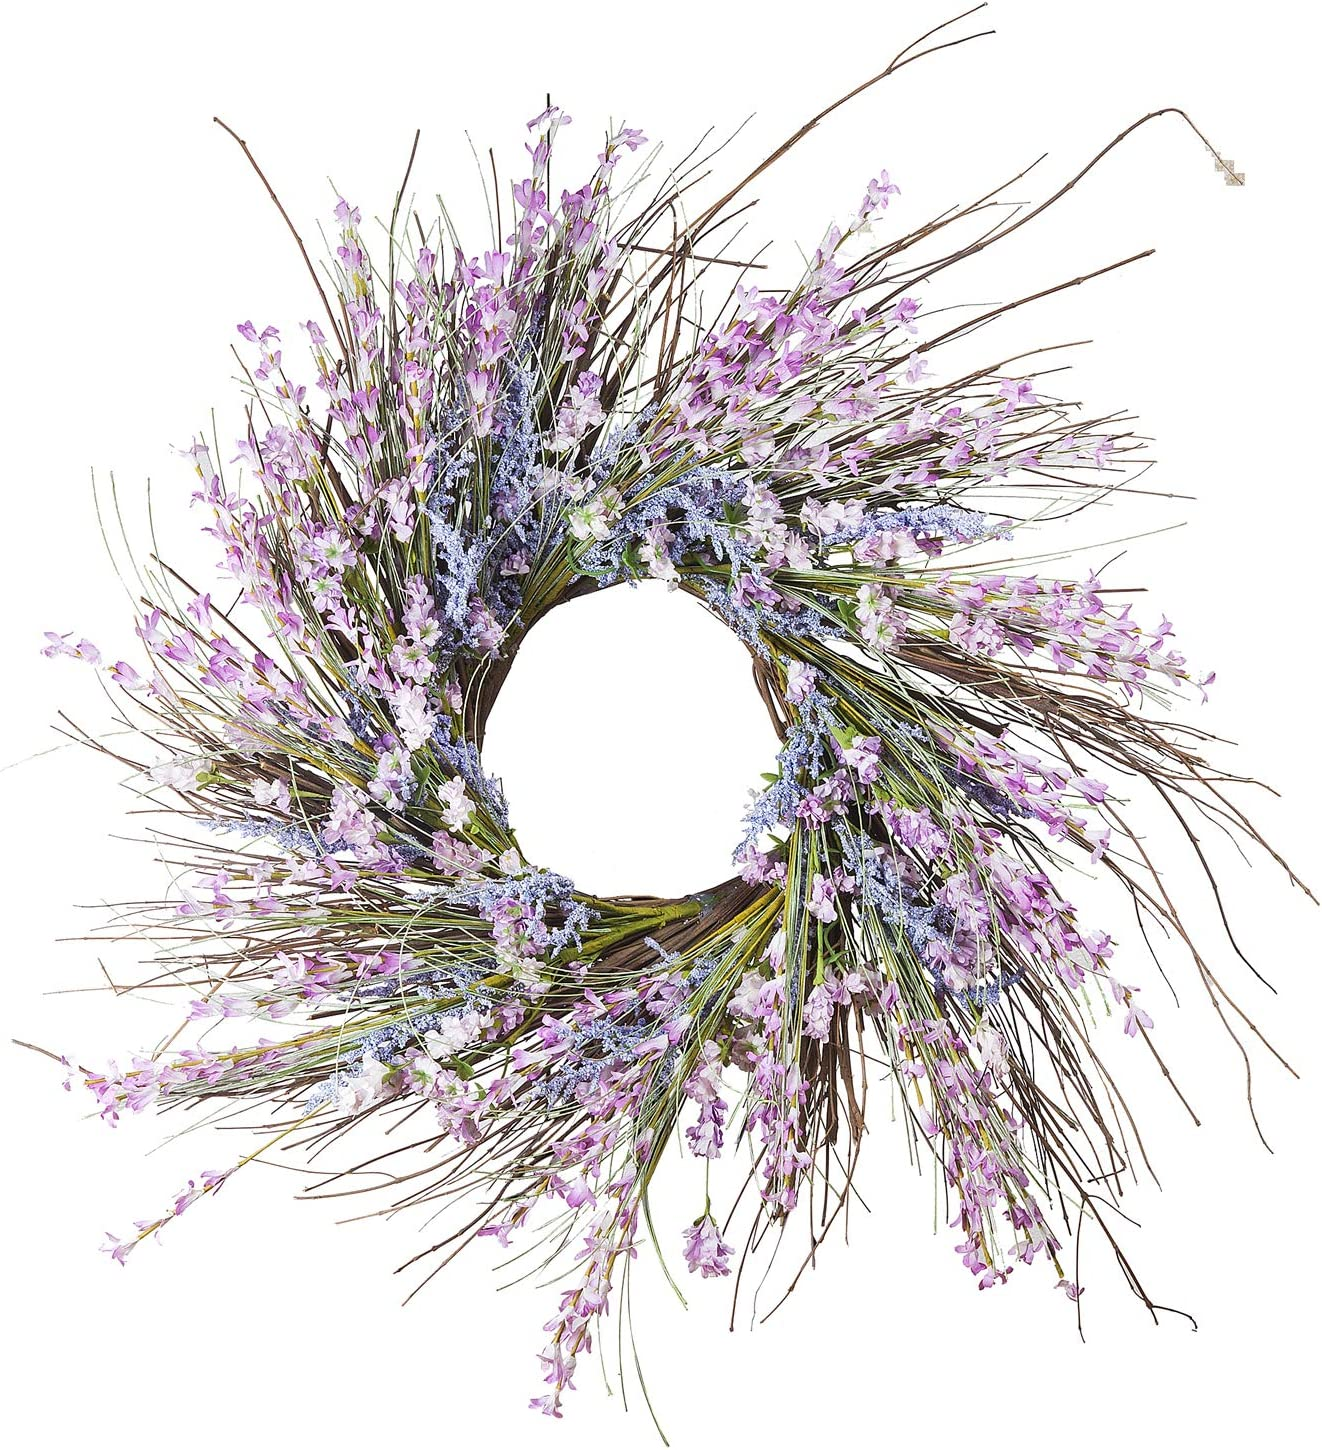 Enova Max 44% OFF Home 24 inches Artificial Spring Wreath Festiva Flower for Very popular!